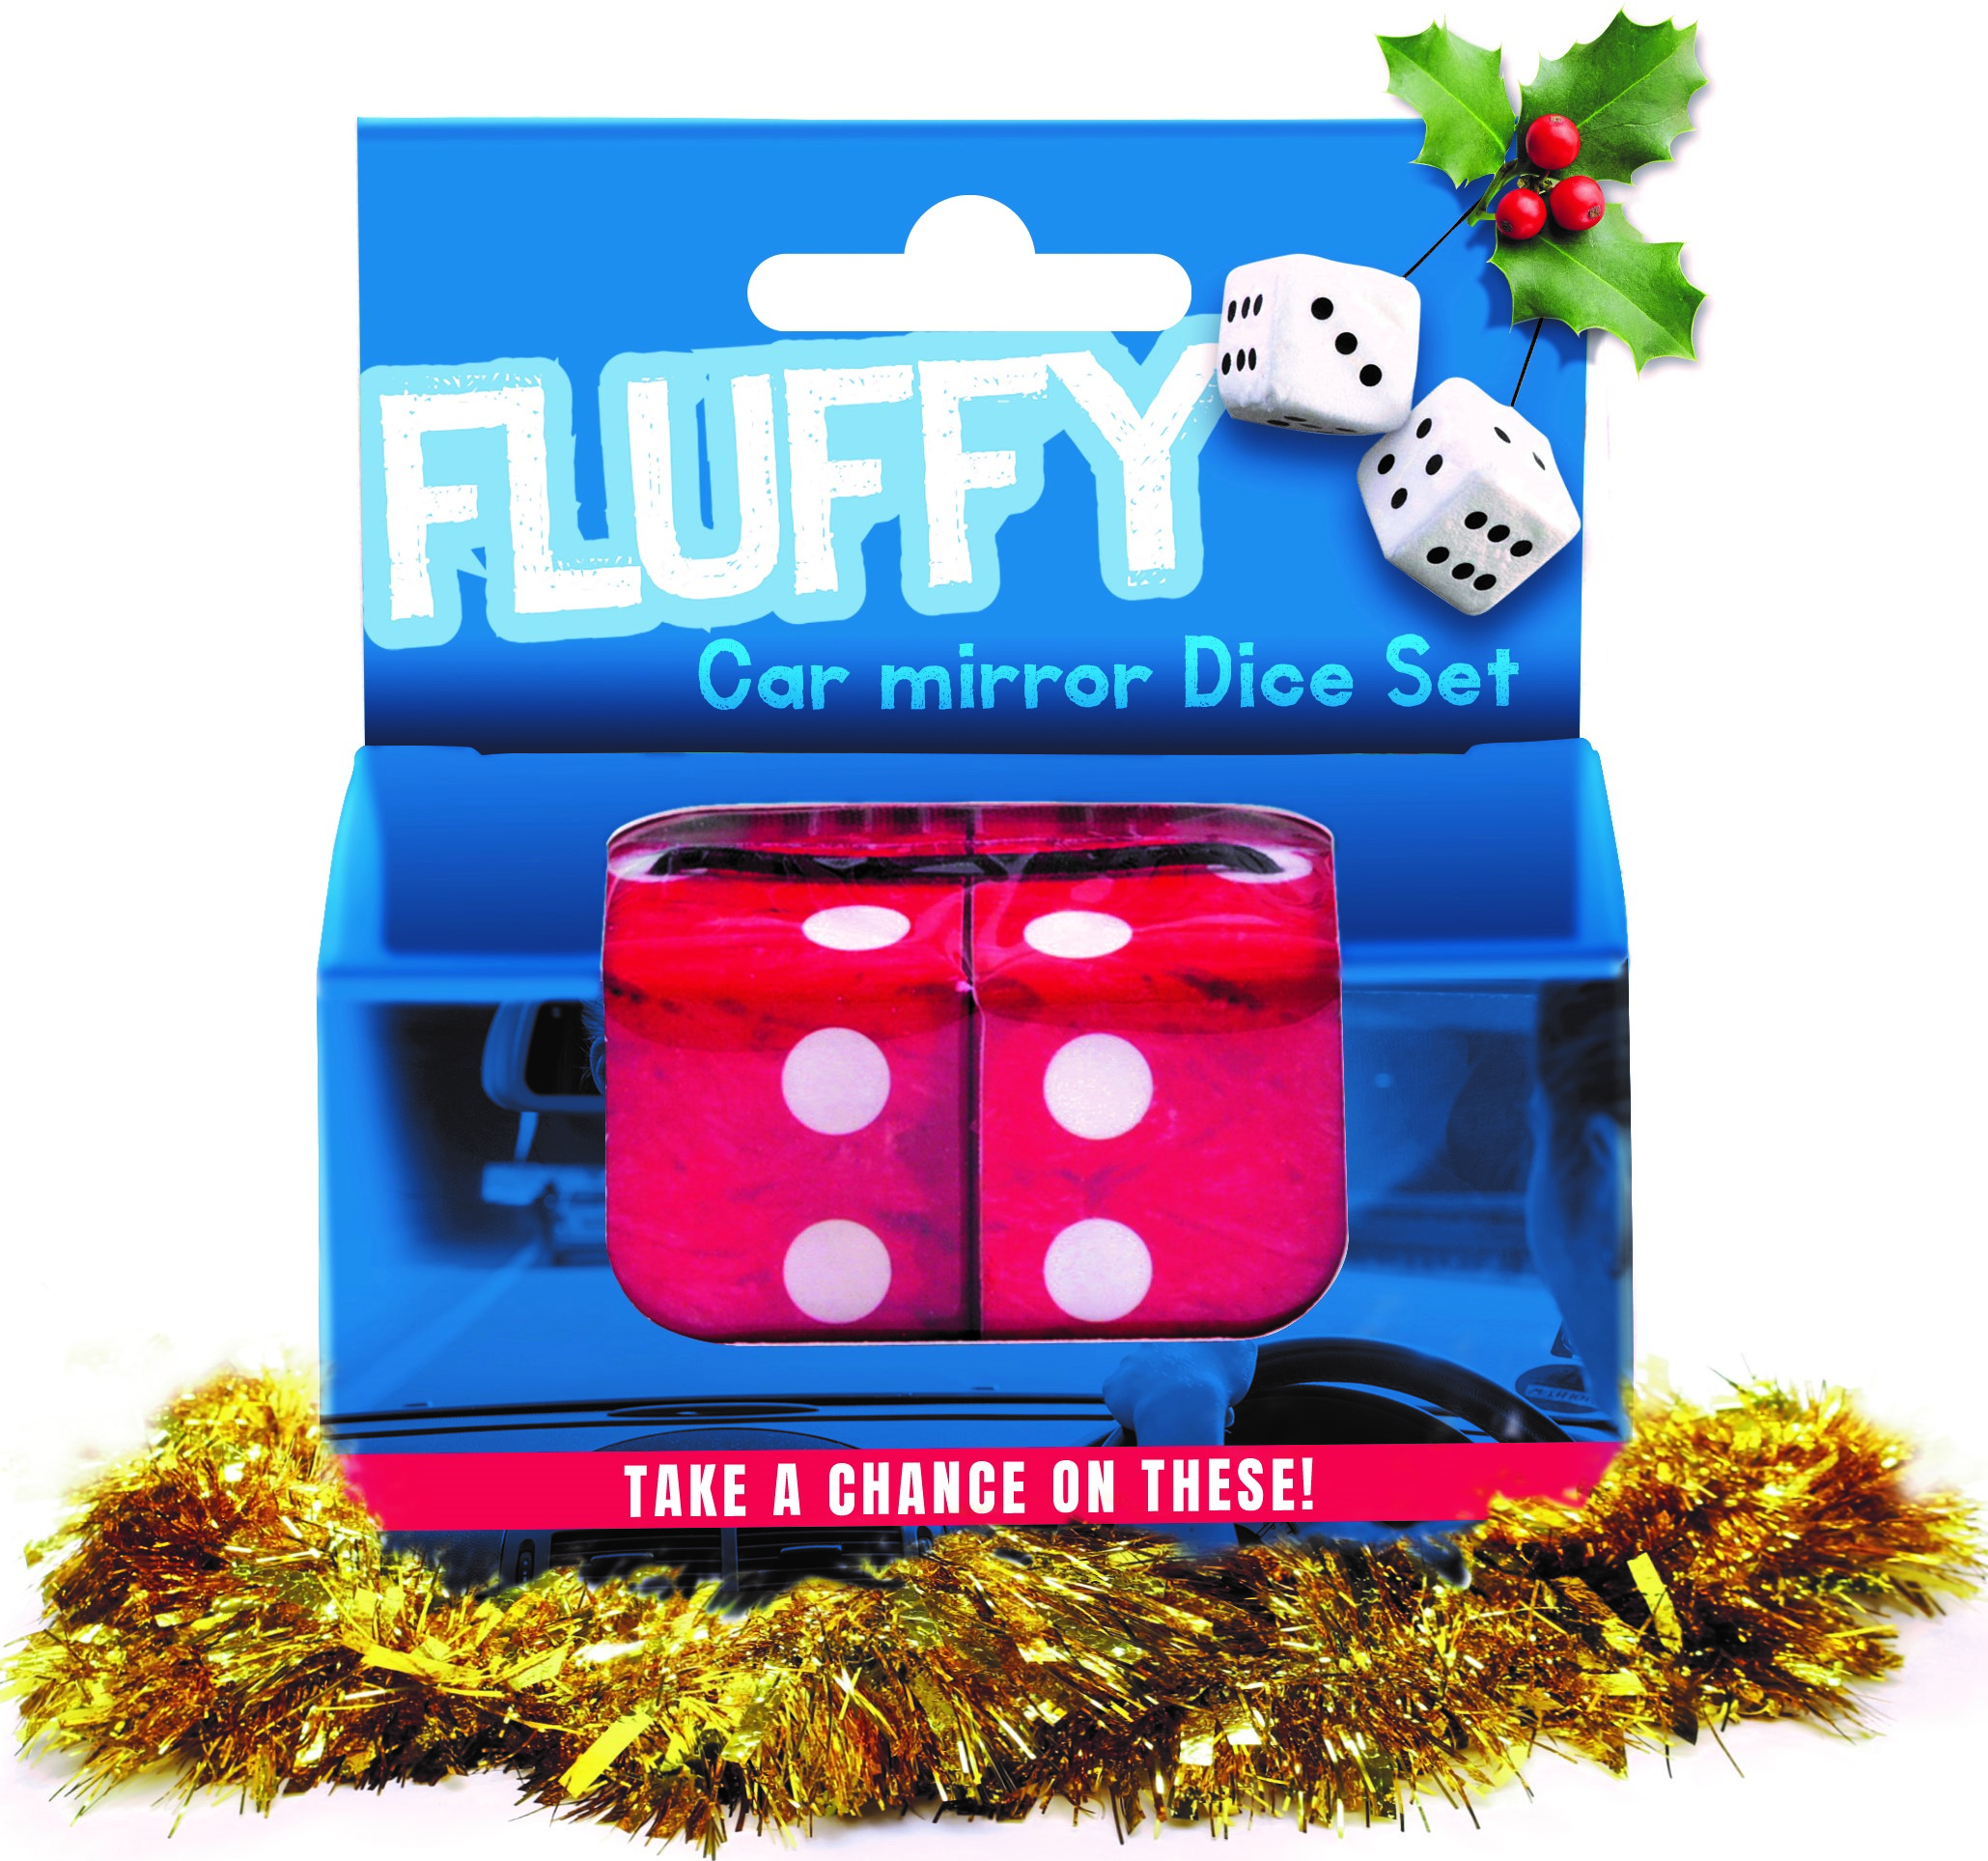 Fluffy dice Christmas gift voucher